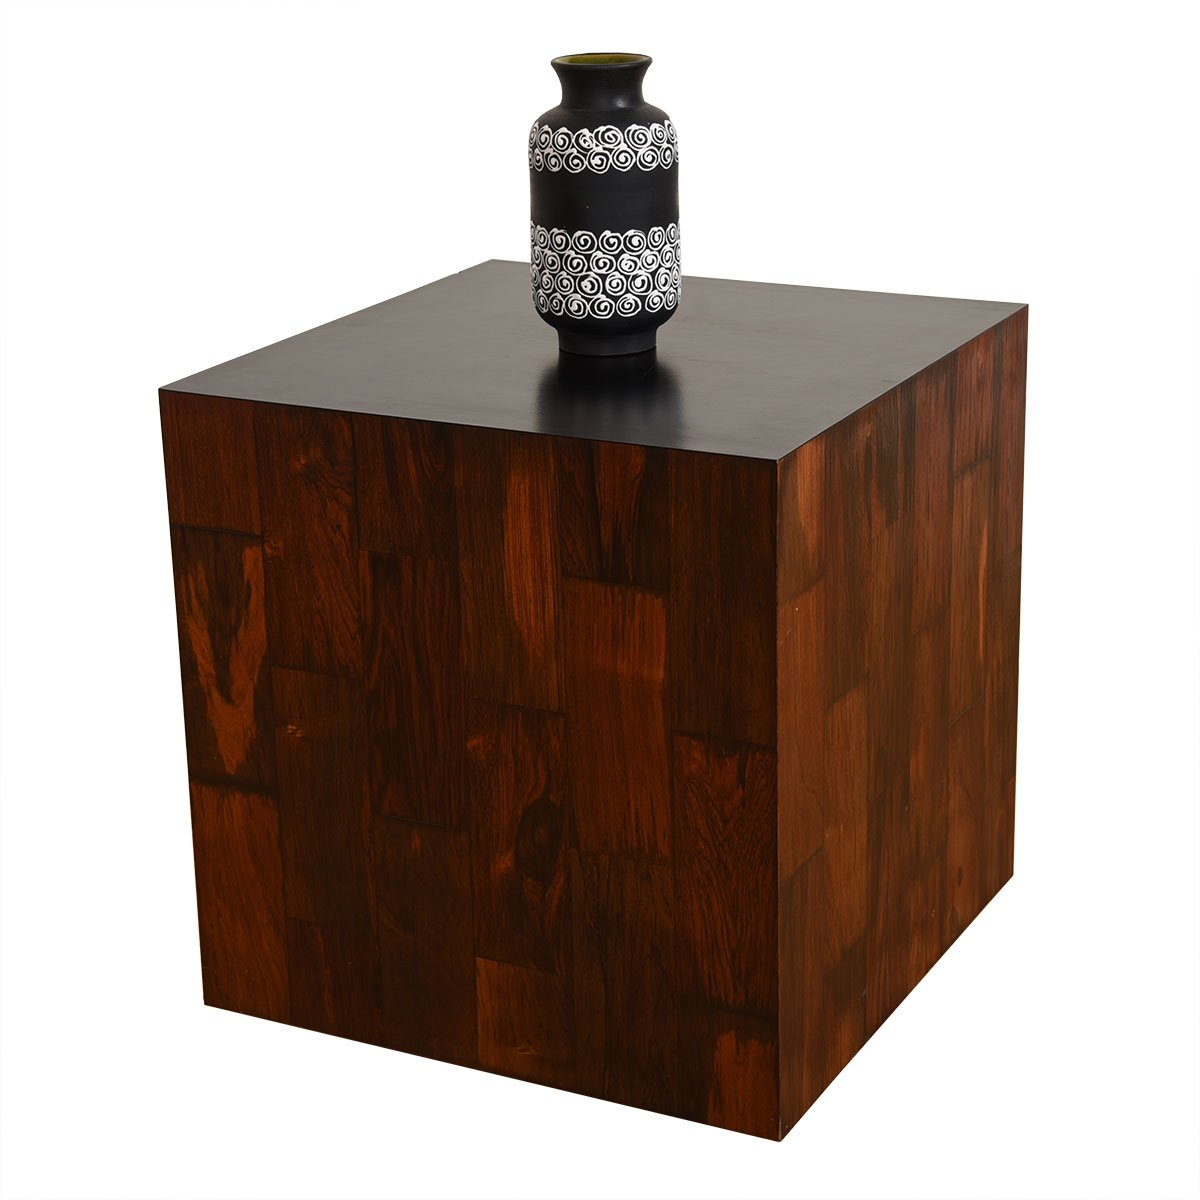 Rosewood Accent Table / Stool with Removable Cushion.